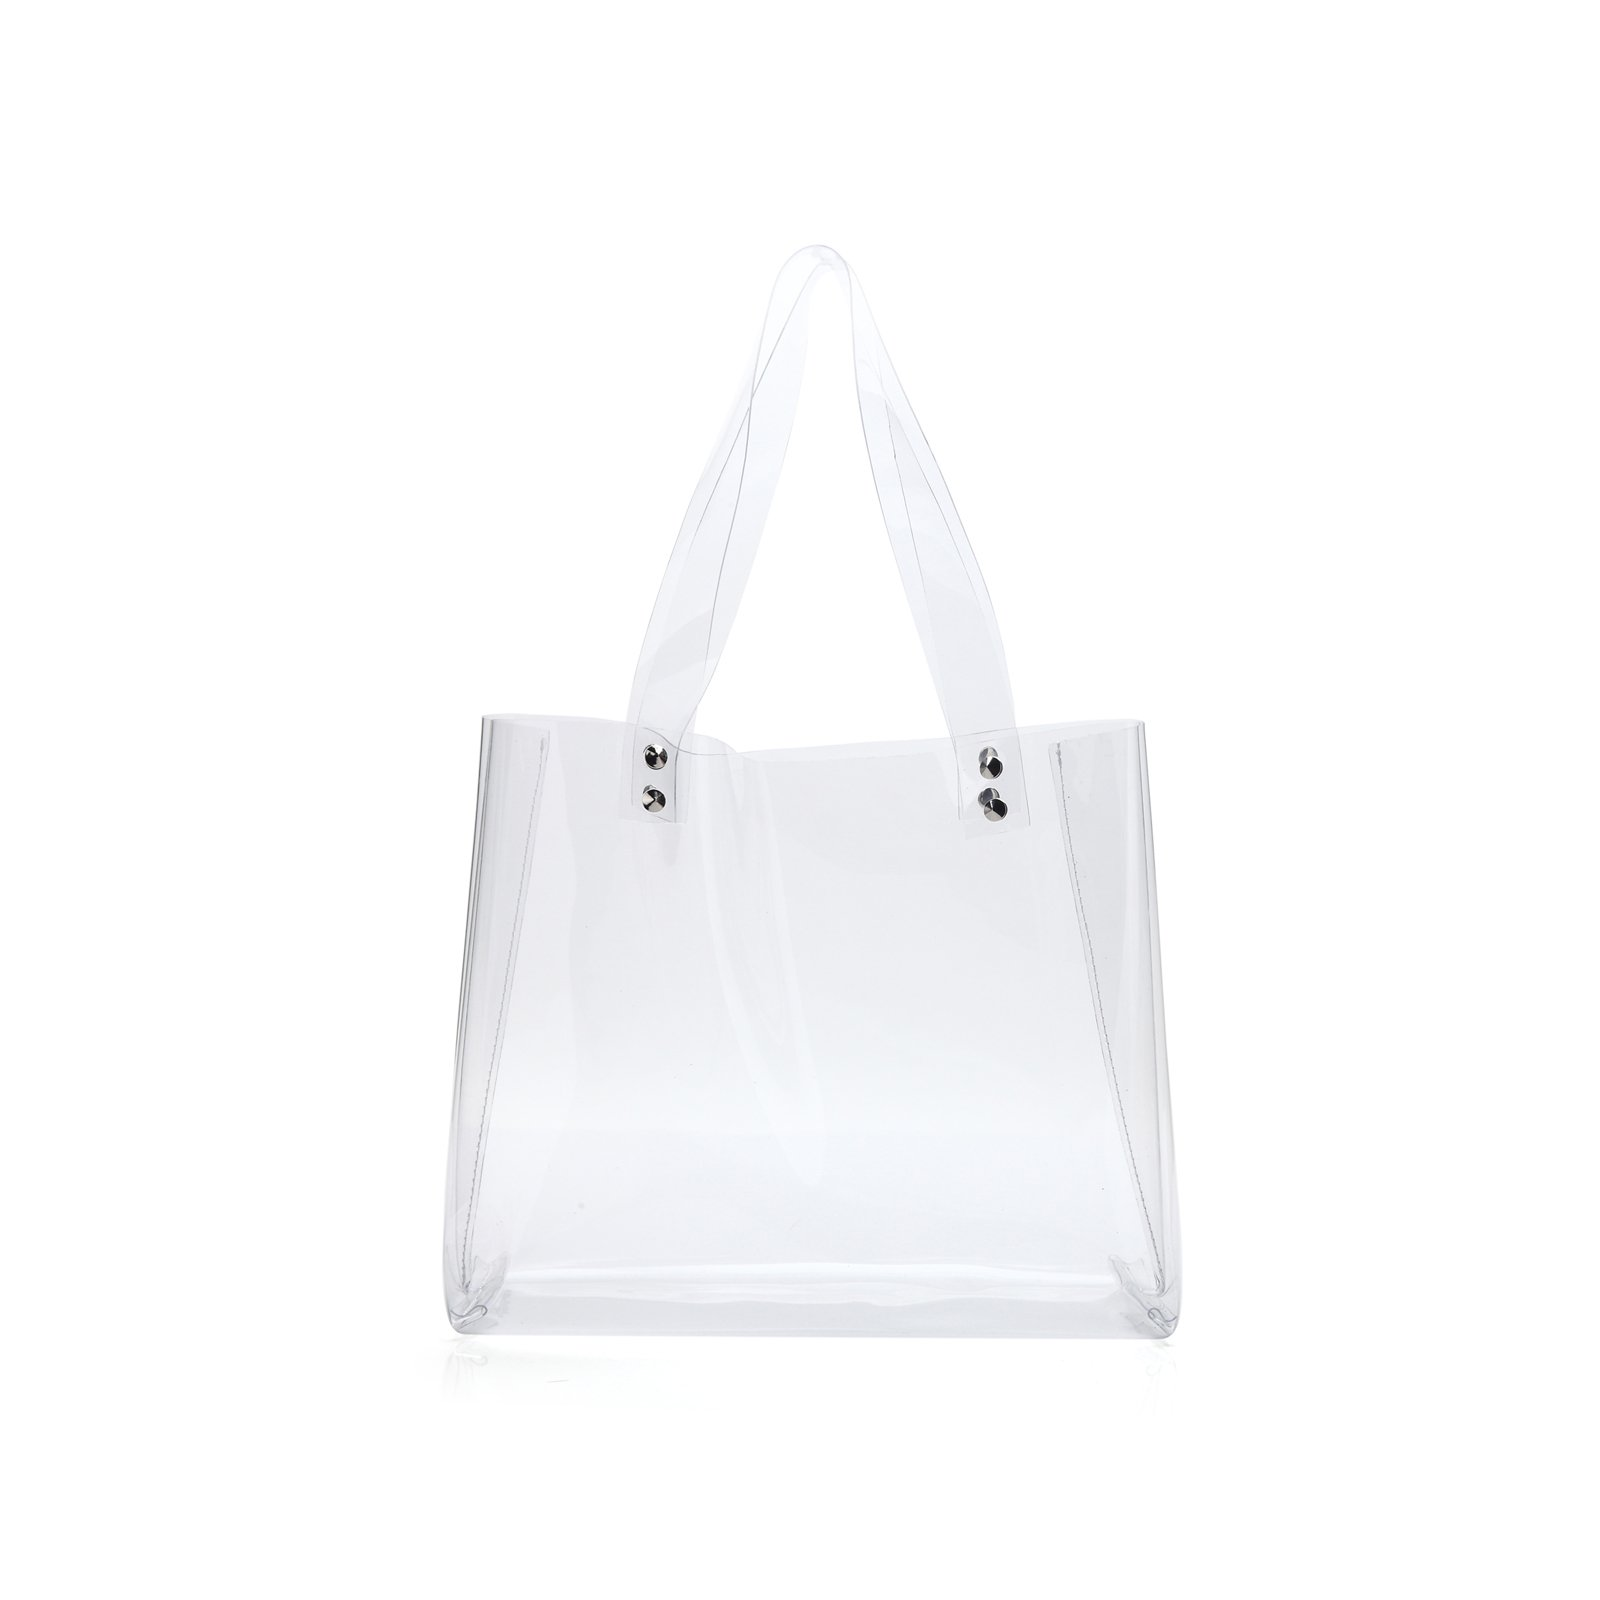 Lam Gallery NFL Stadium Approved Clear Tote Bag Womens Clear Purse Handbags for Work PVC Transparent Bags(Horizontal Style)